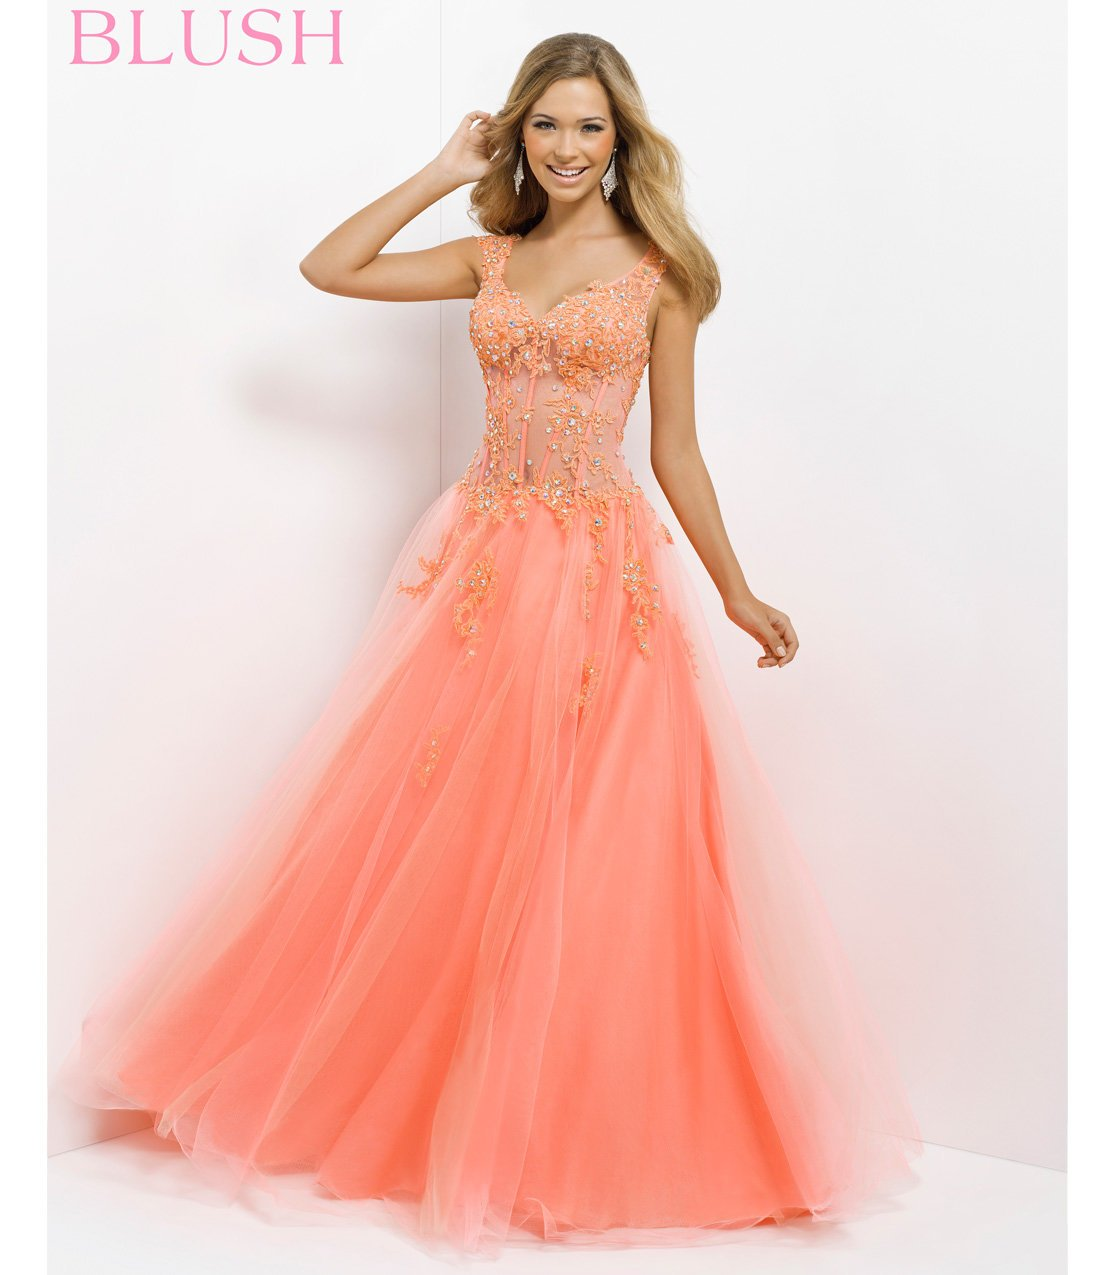 (PRE-ORDER) Pink By Blush 2014 Prom From Unique Vintage